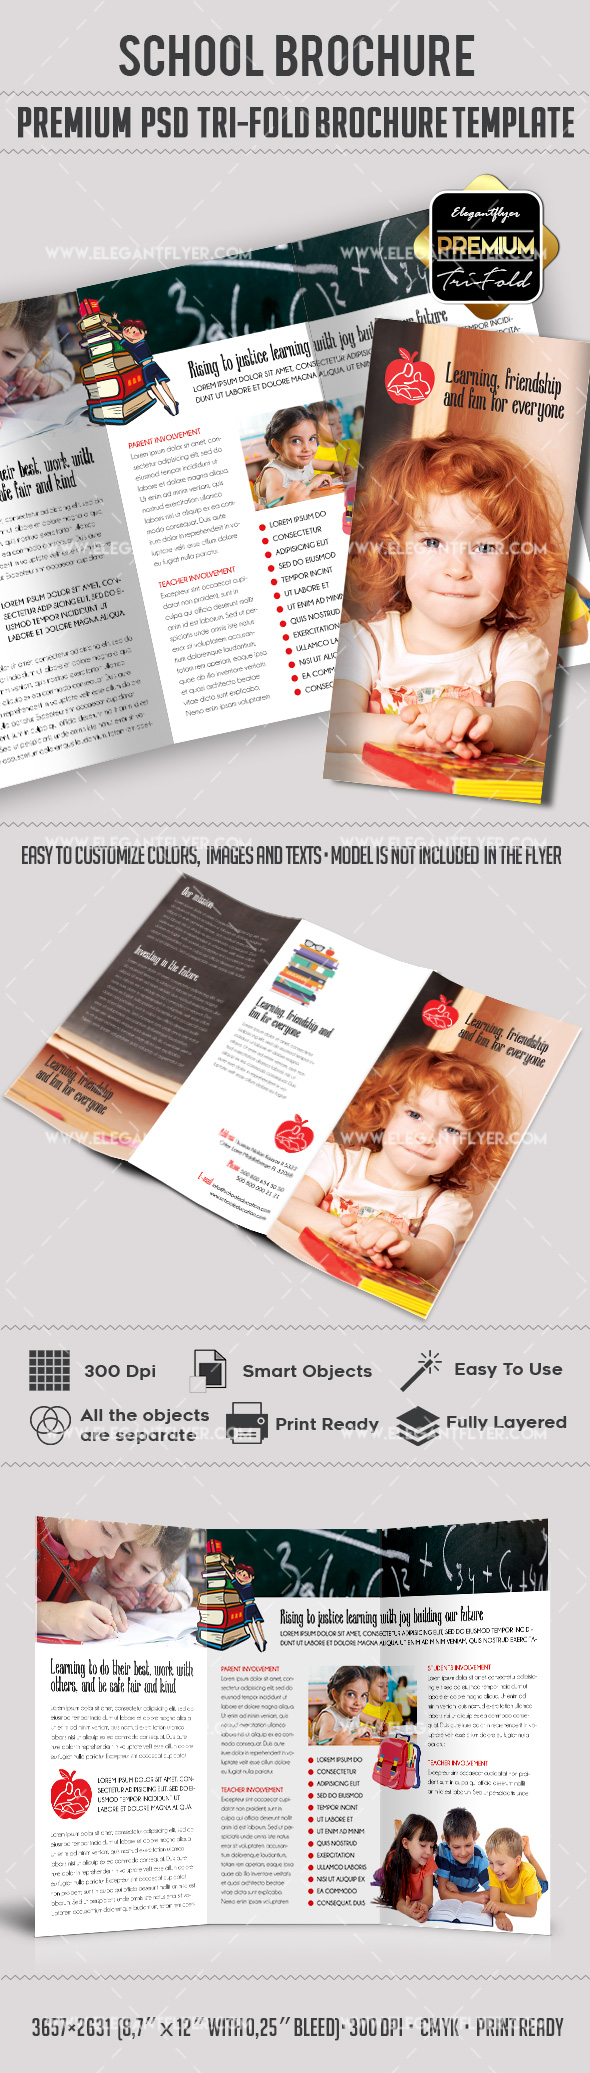 Tri fold psd brochure for school theme by elegantflyer for 2 fold brochure template psd